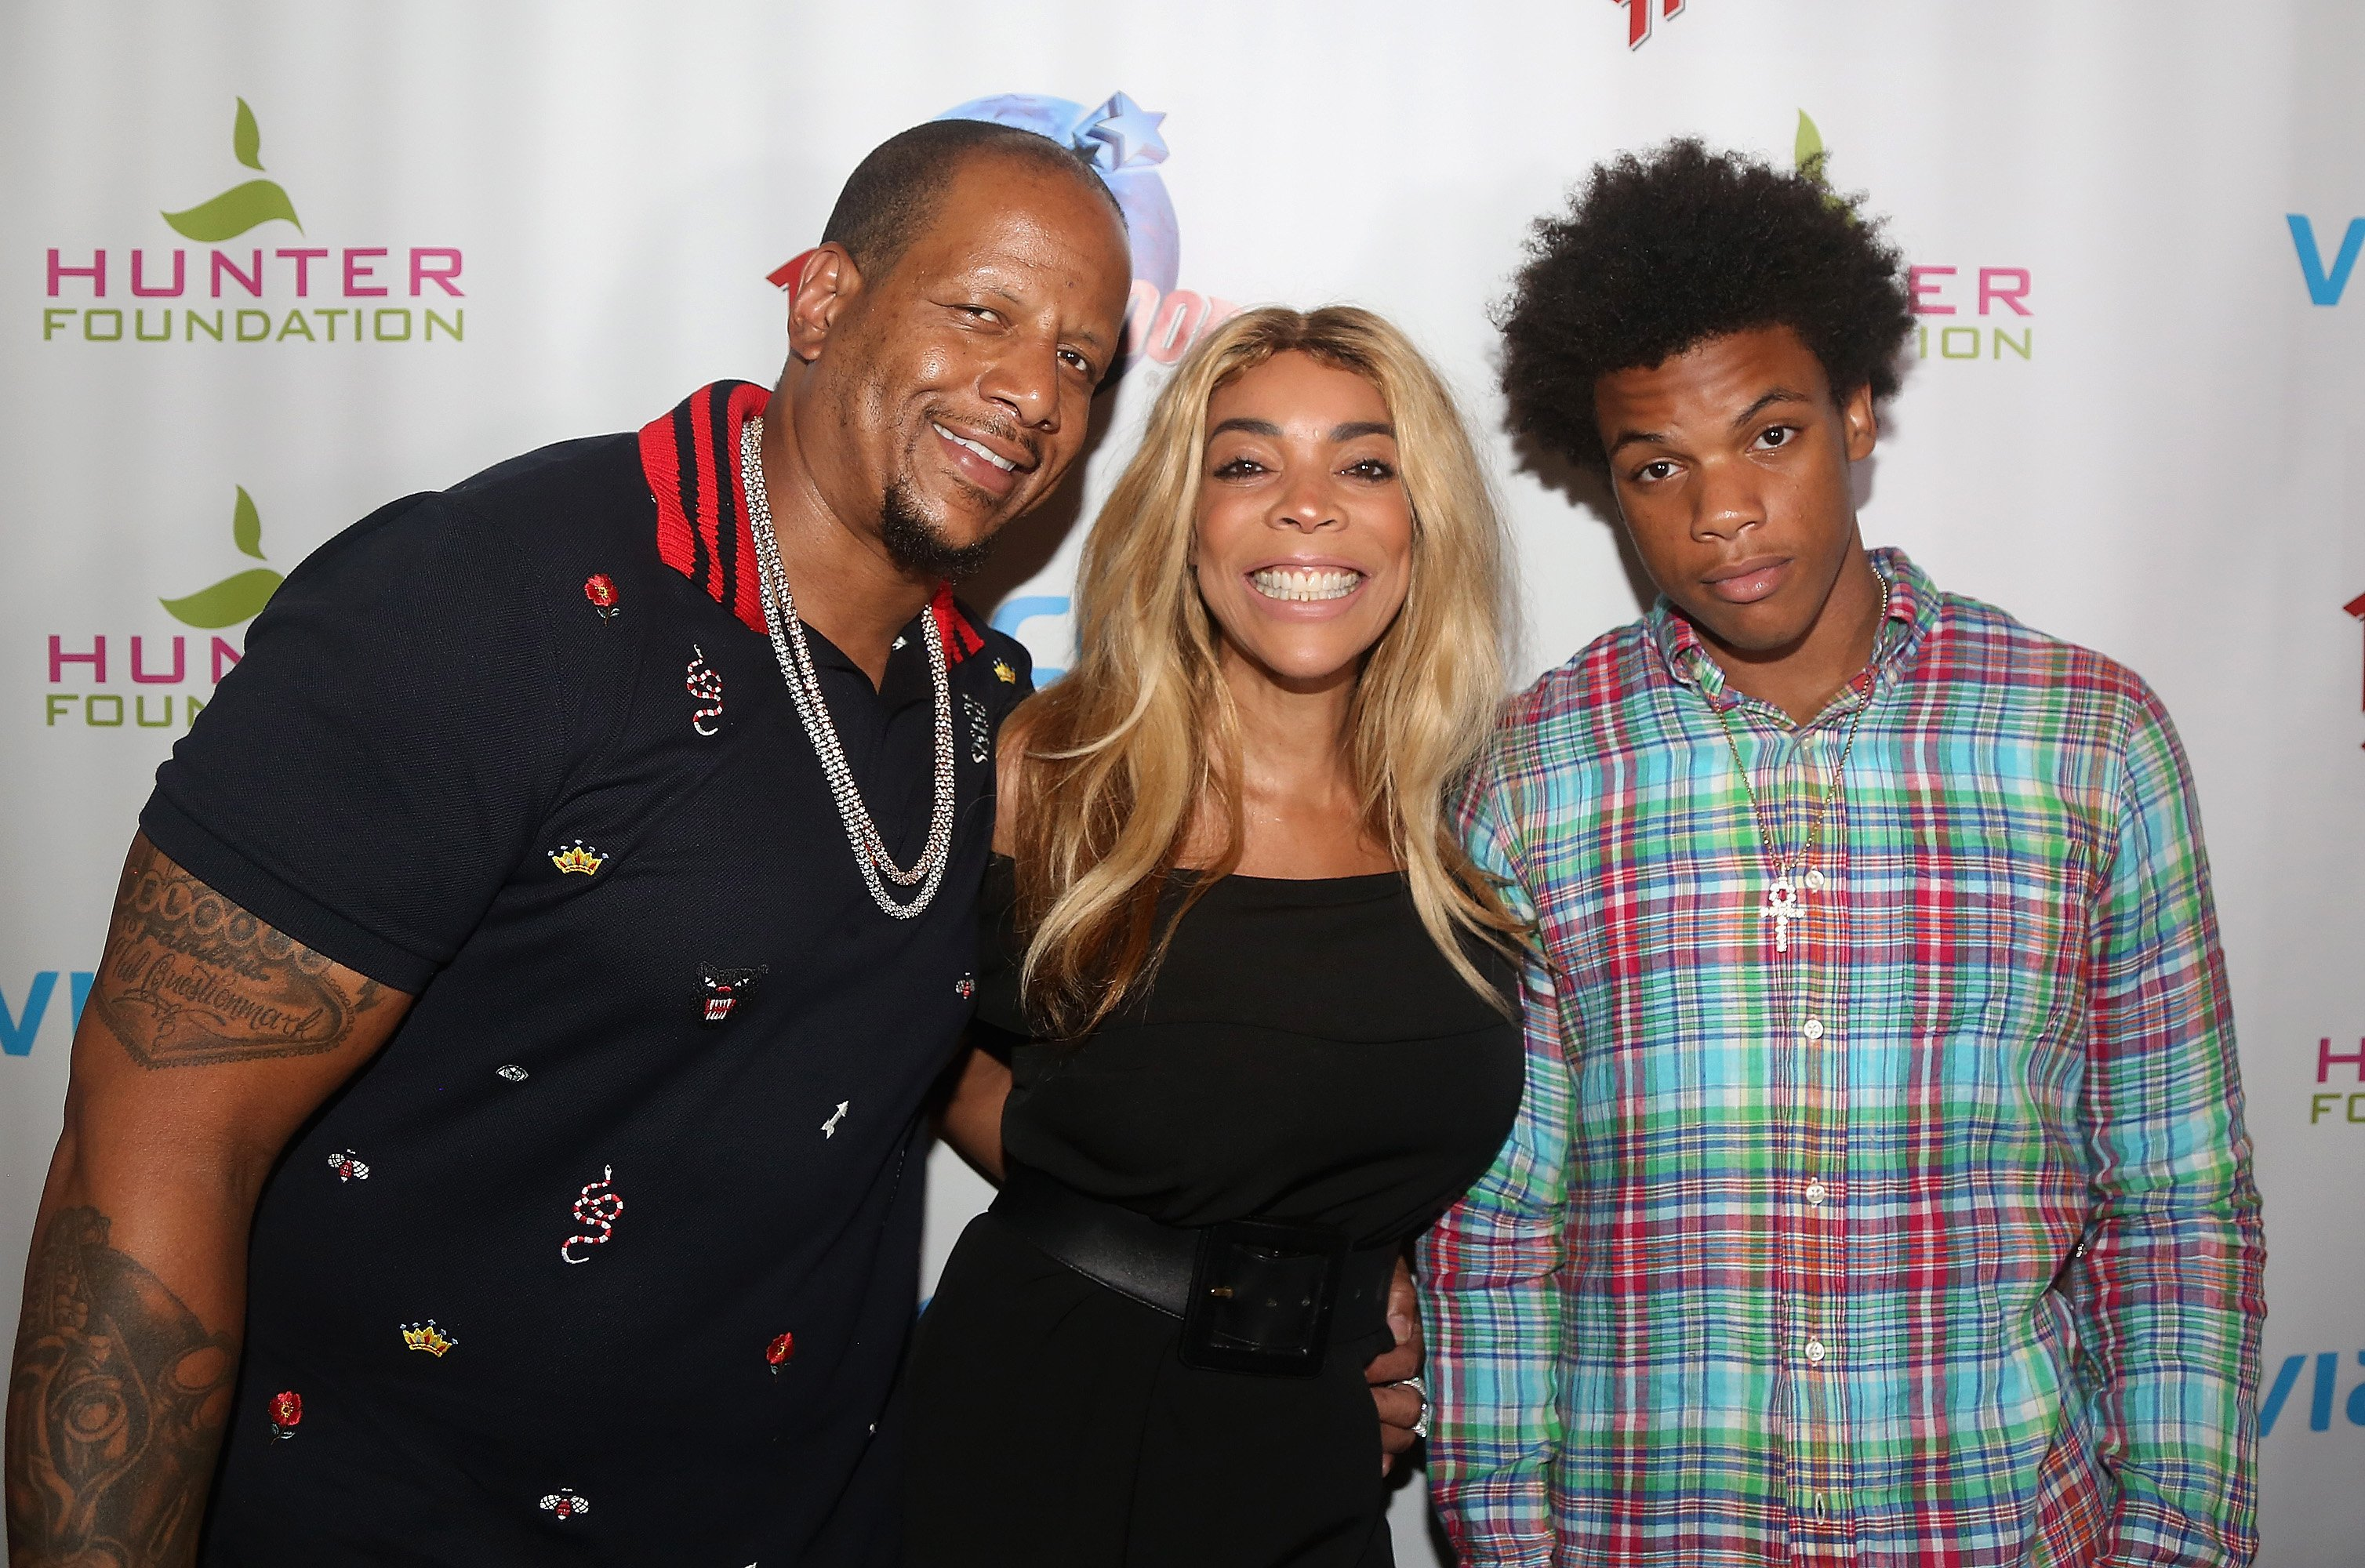 Kevin Hunter, Wendy Williams & Kevin Hunter Jr. at Planet Hollywood Times Square in New York City on July 11, 2017 | Photo: Getty Images